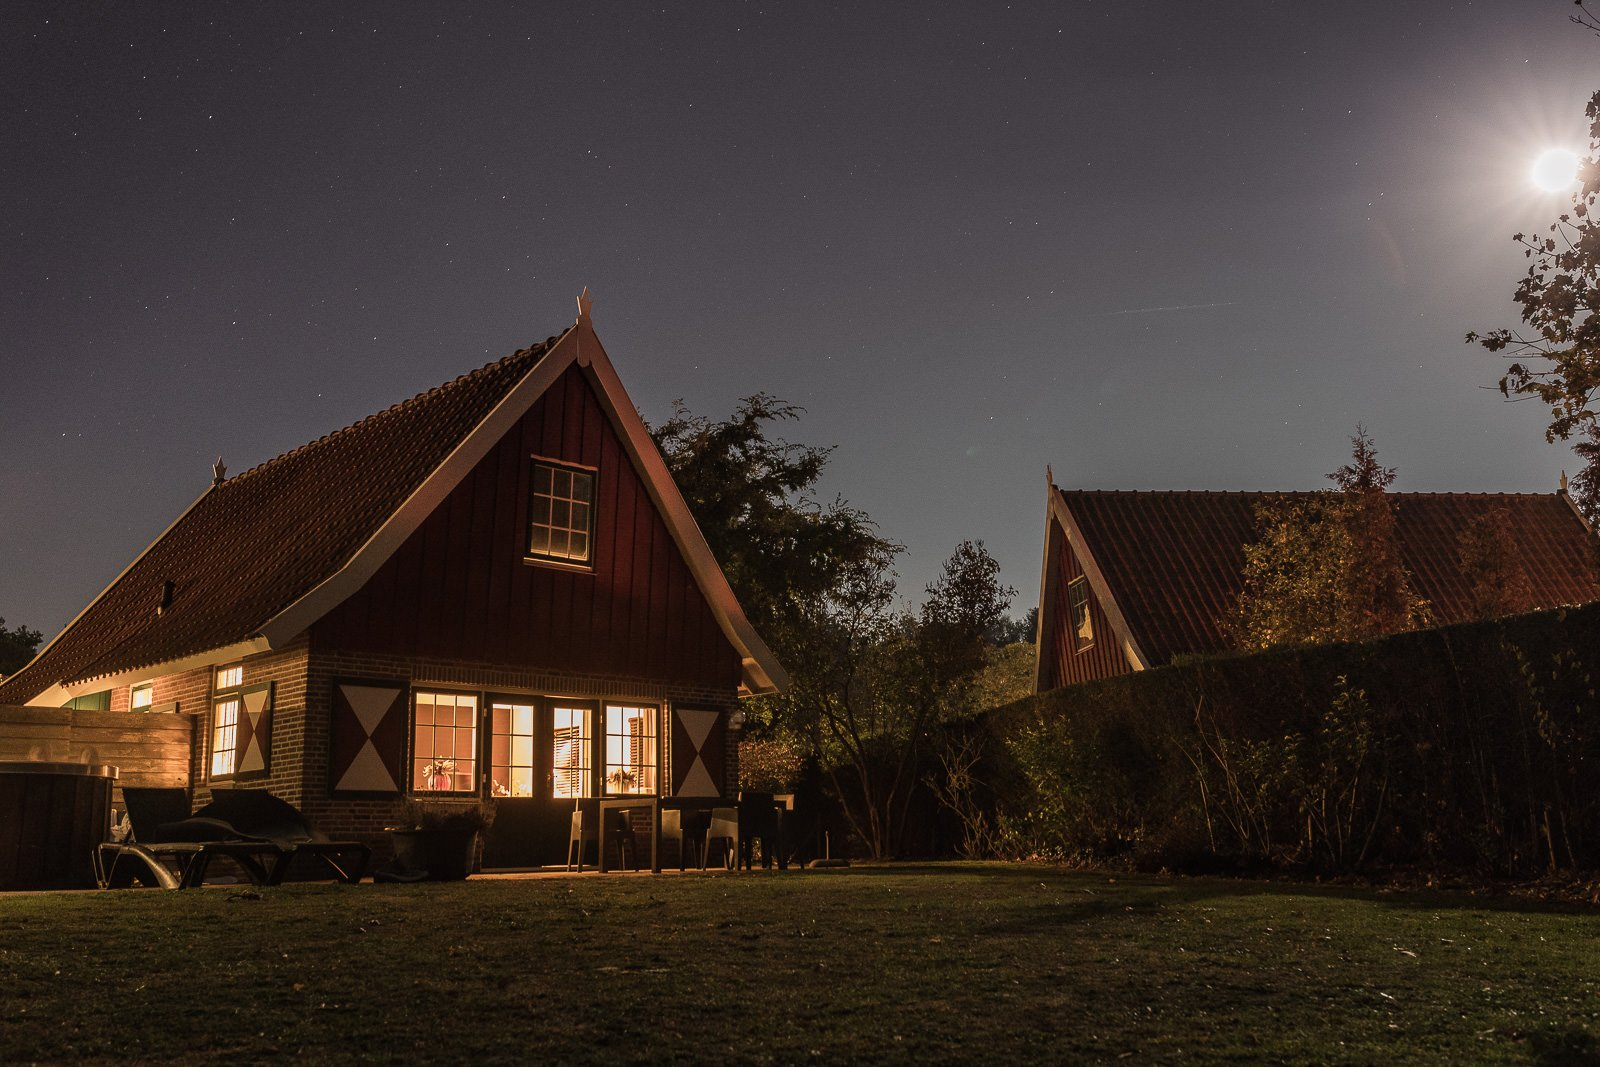 onthaasten in de achterhoek house by night